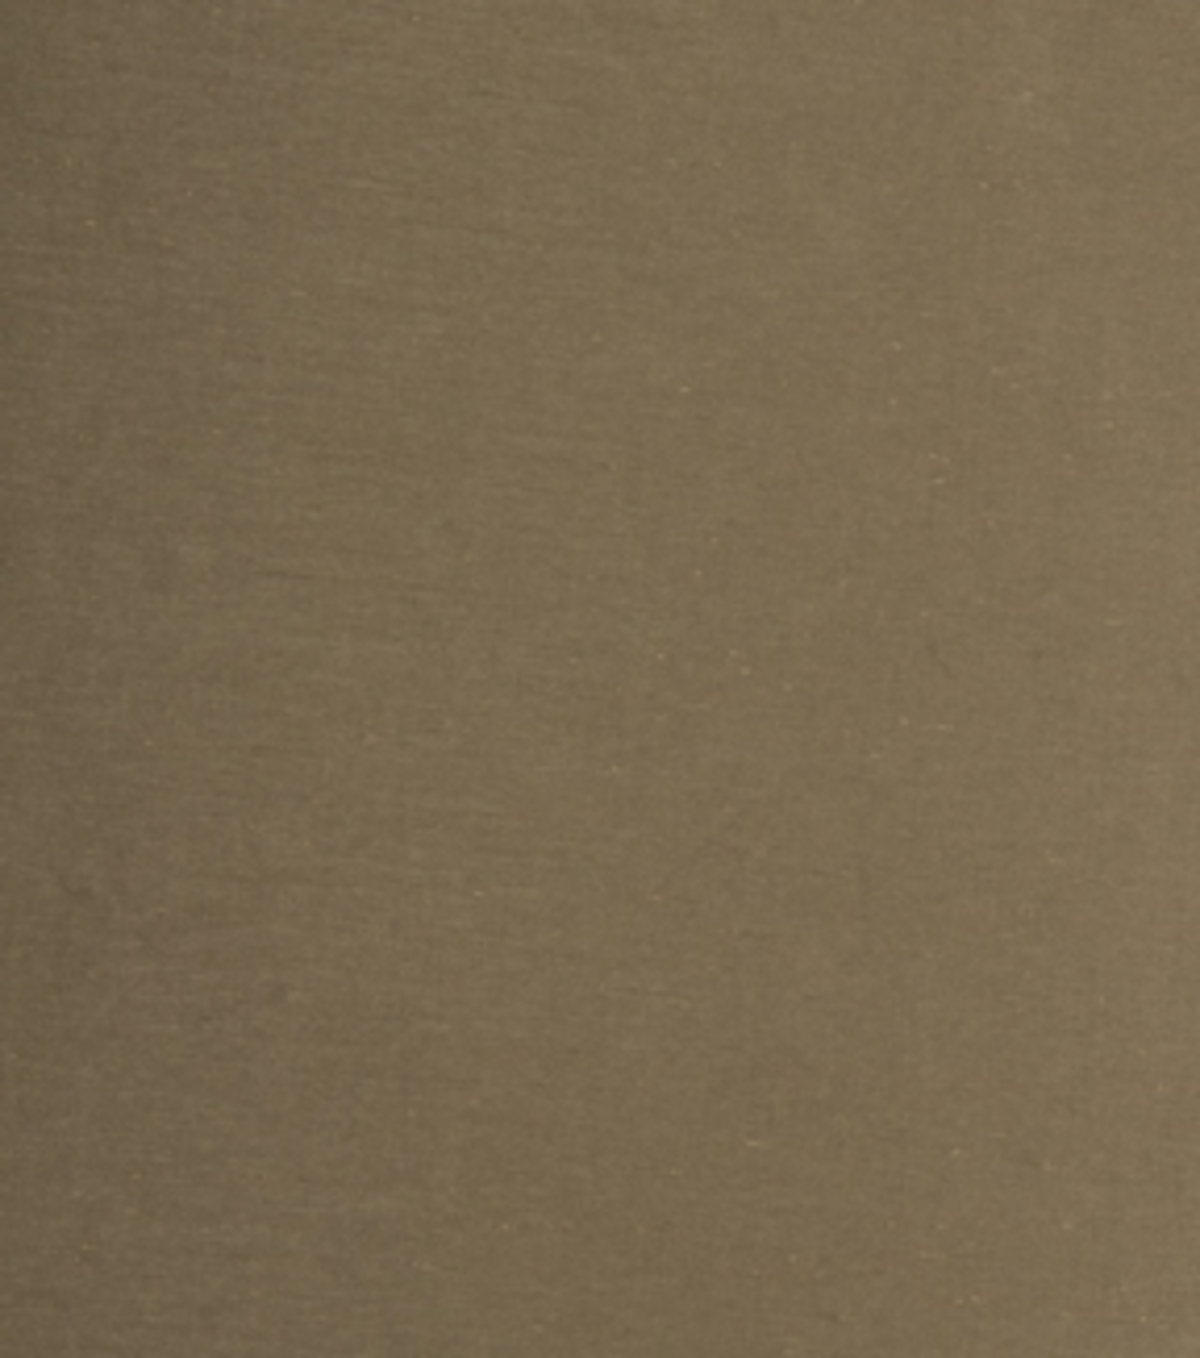 Home Decor 8\u0022x8\u0022 Fabric Swatch-Signature Series Airforce Hickory